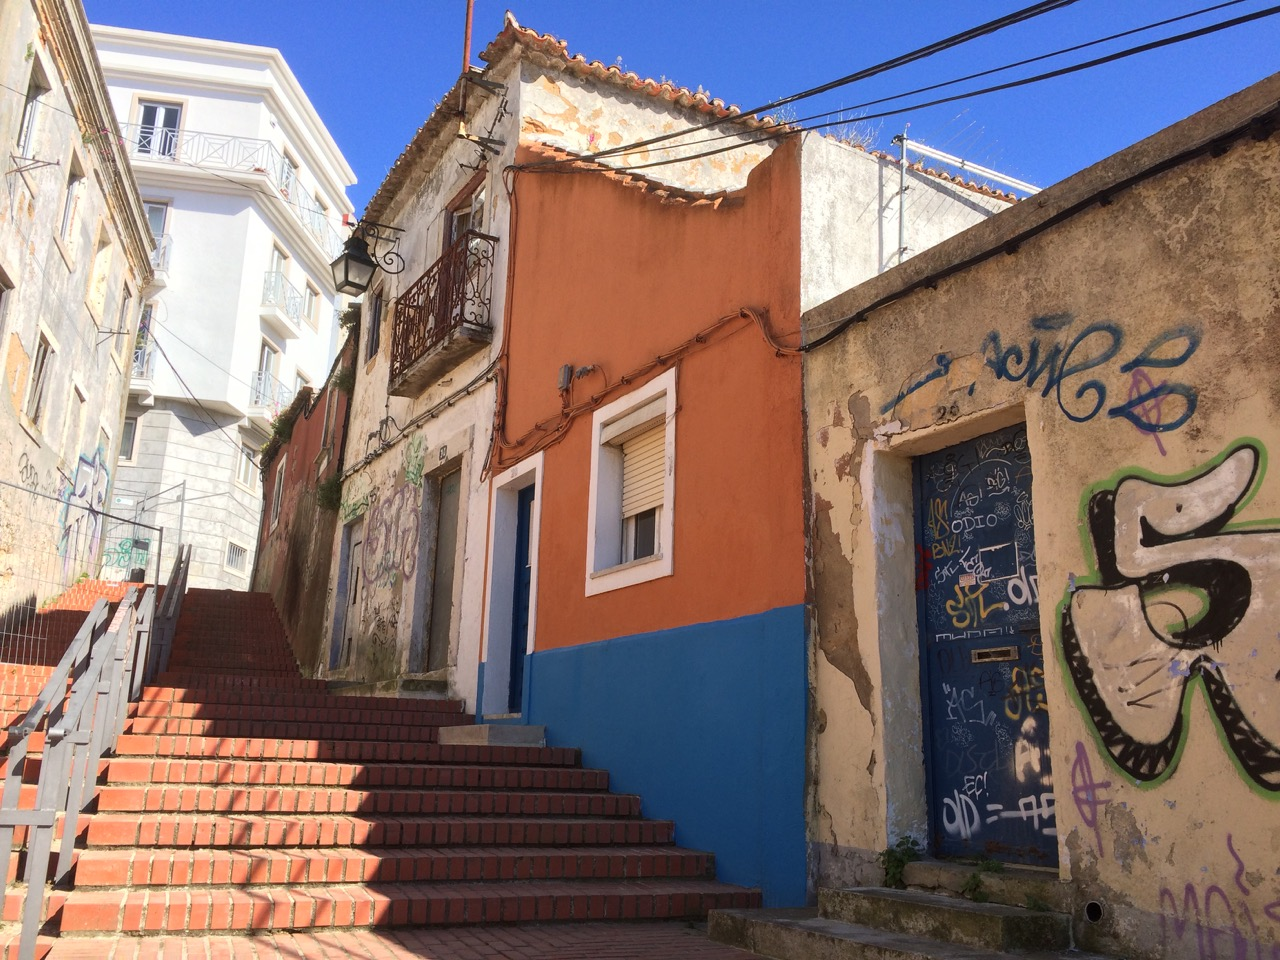 photo essay unseen cacilhas traveling bytes this is my favorite shot from our cacilhas walkabout it captured the essence of this town colorful and polished rundown and forgotten past and present